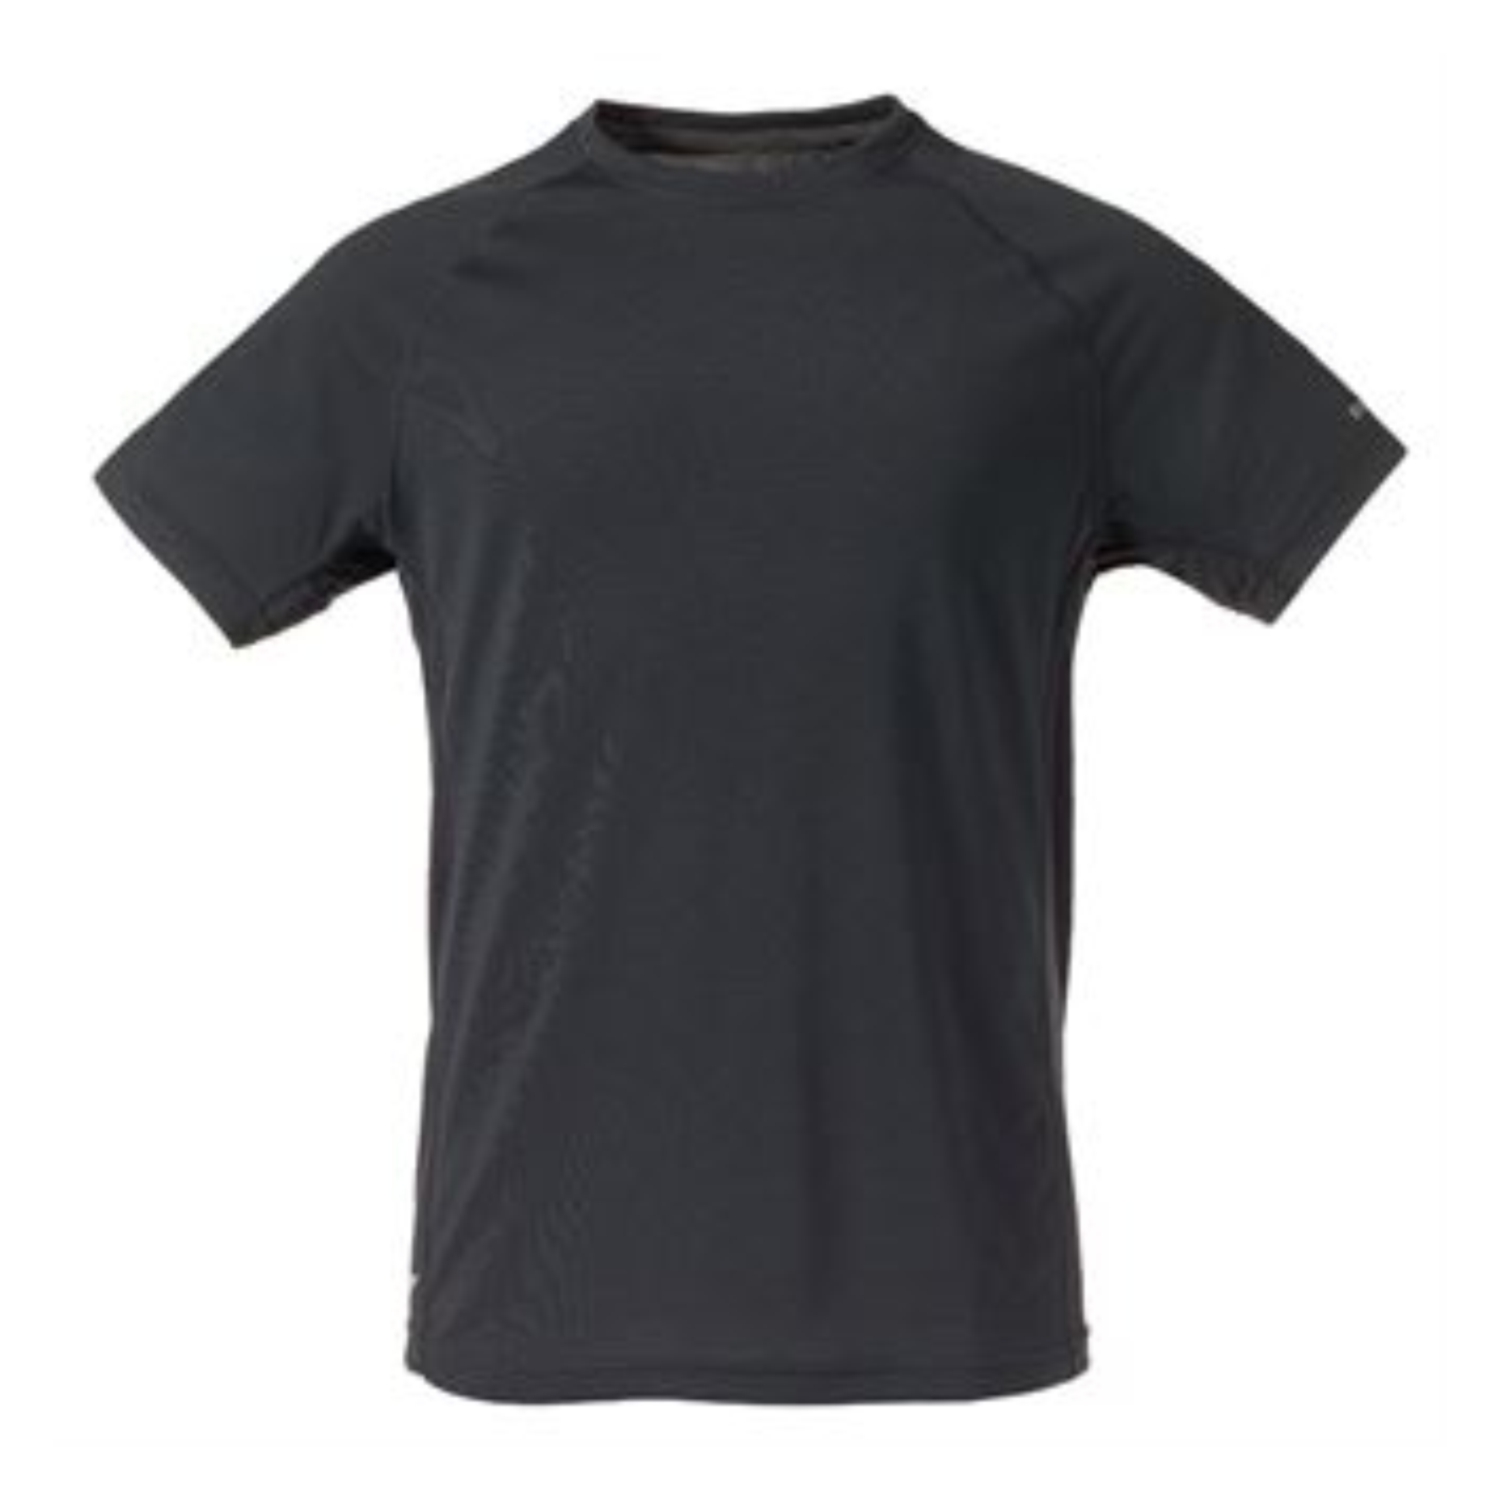 T-Shirts – Uniforms, Clothing & Workwear